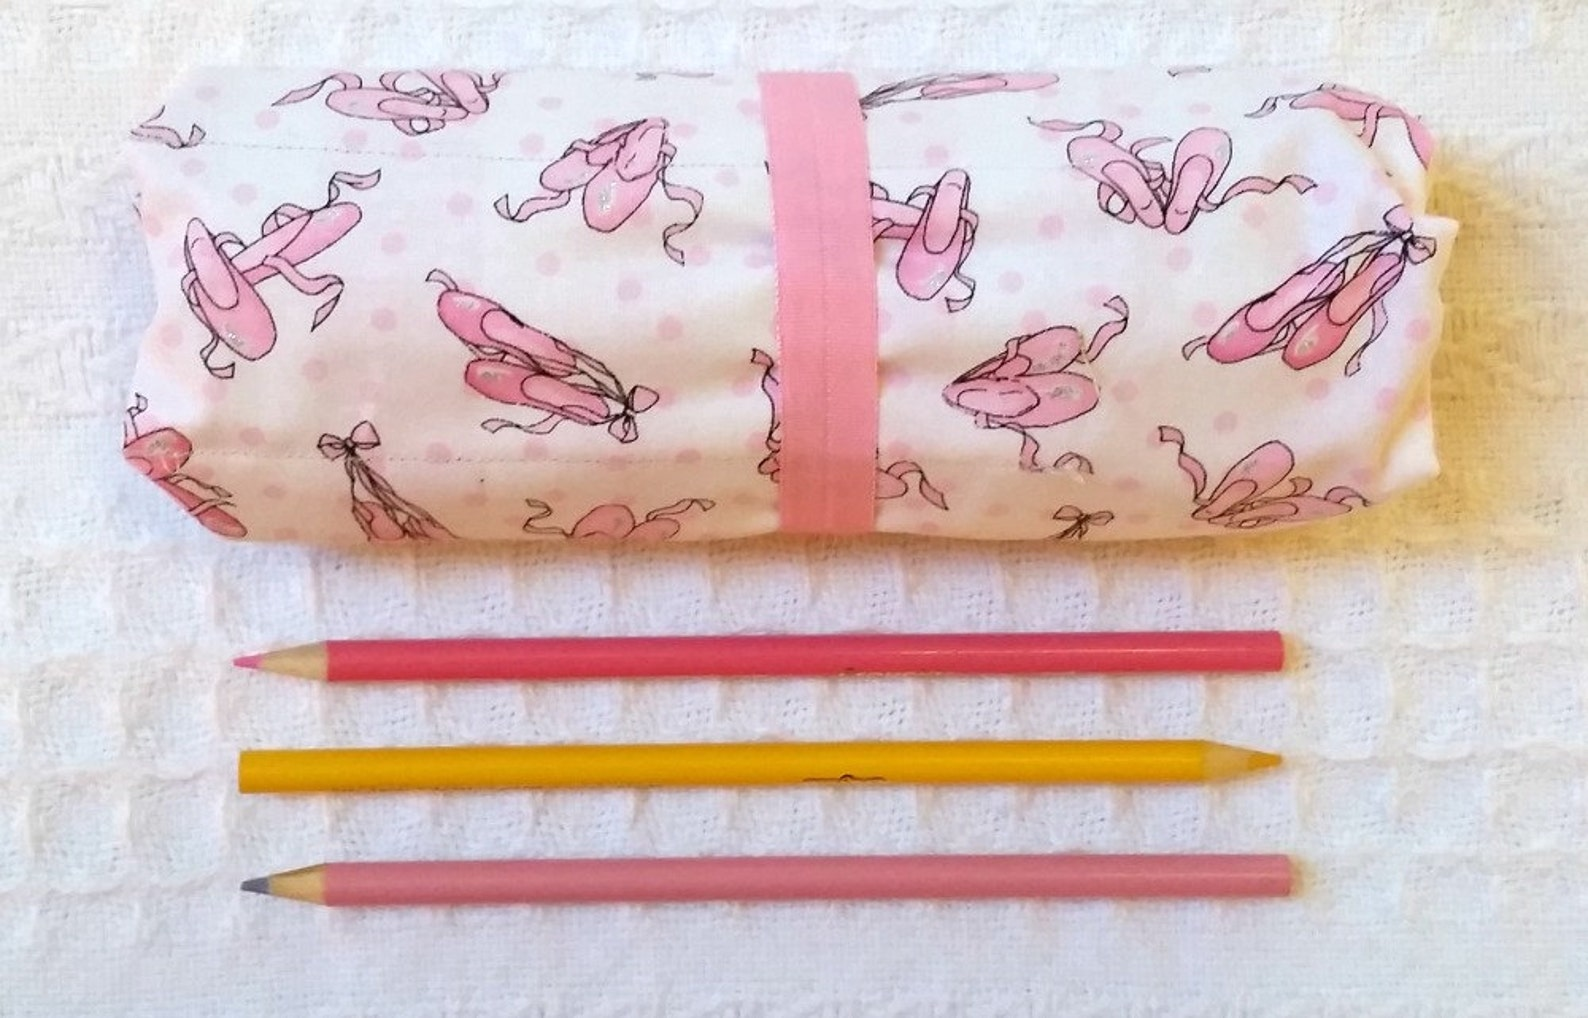 pencil roll, colored pencil holder, roll, rollup for coloring, colored pencils, pencil roll up, free ship pink ballet slippers s